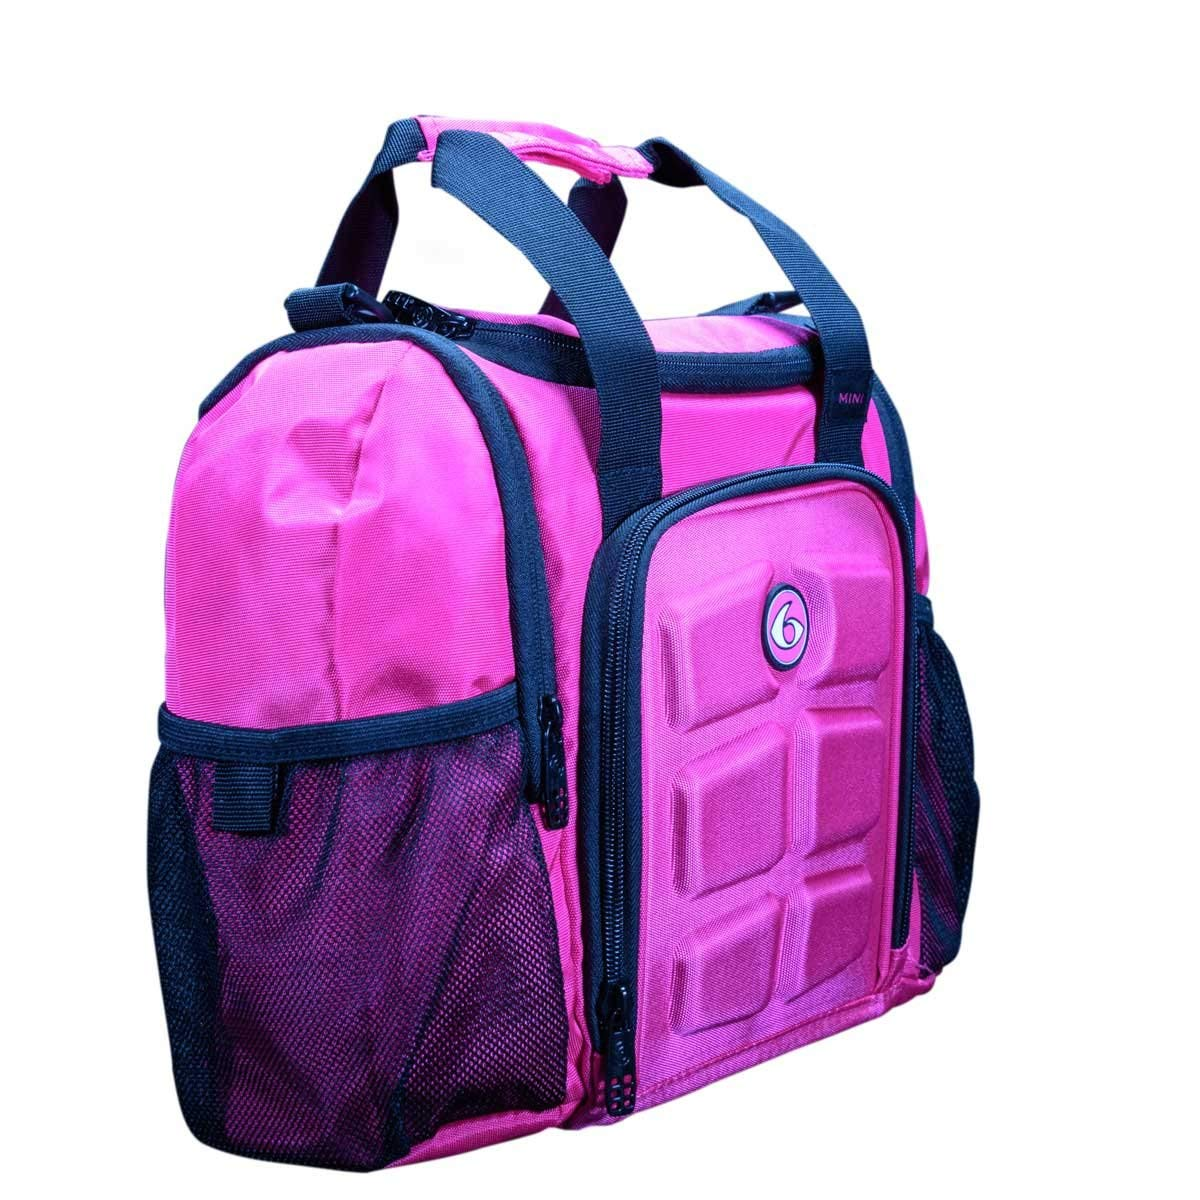 6 Pack Fitness Insulated Meal Prep Bag, Mini Innovator Pink/Black, Meal Prep Bag by 6 Pack Fitness